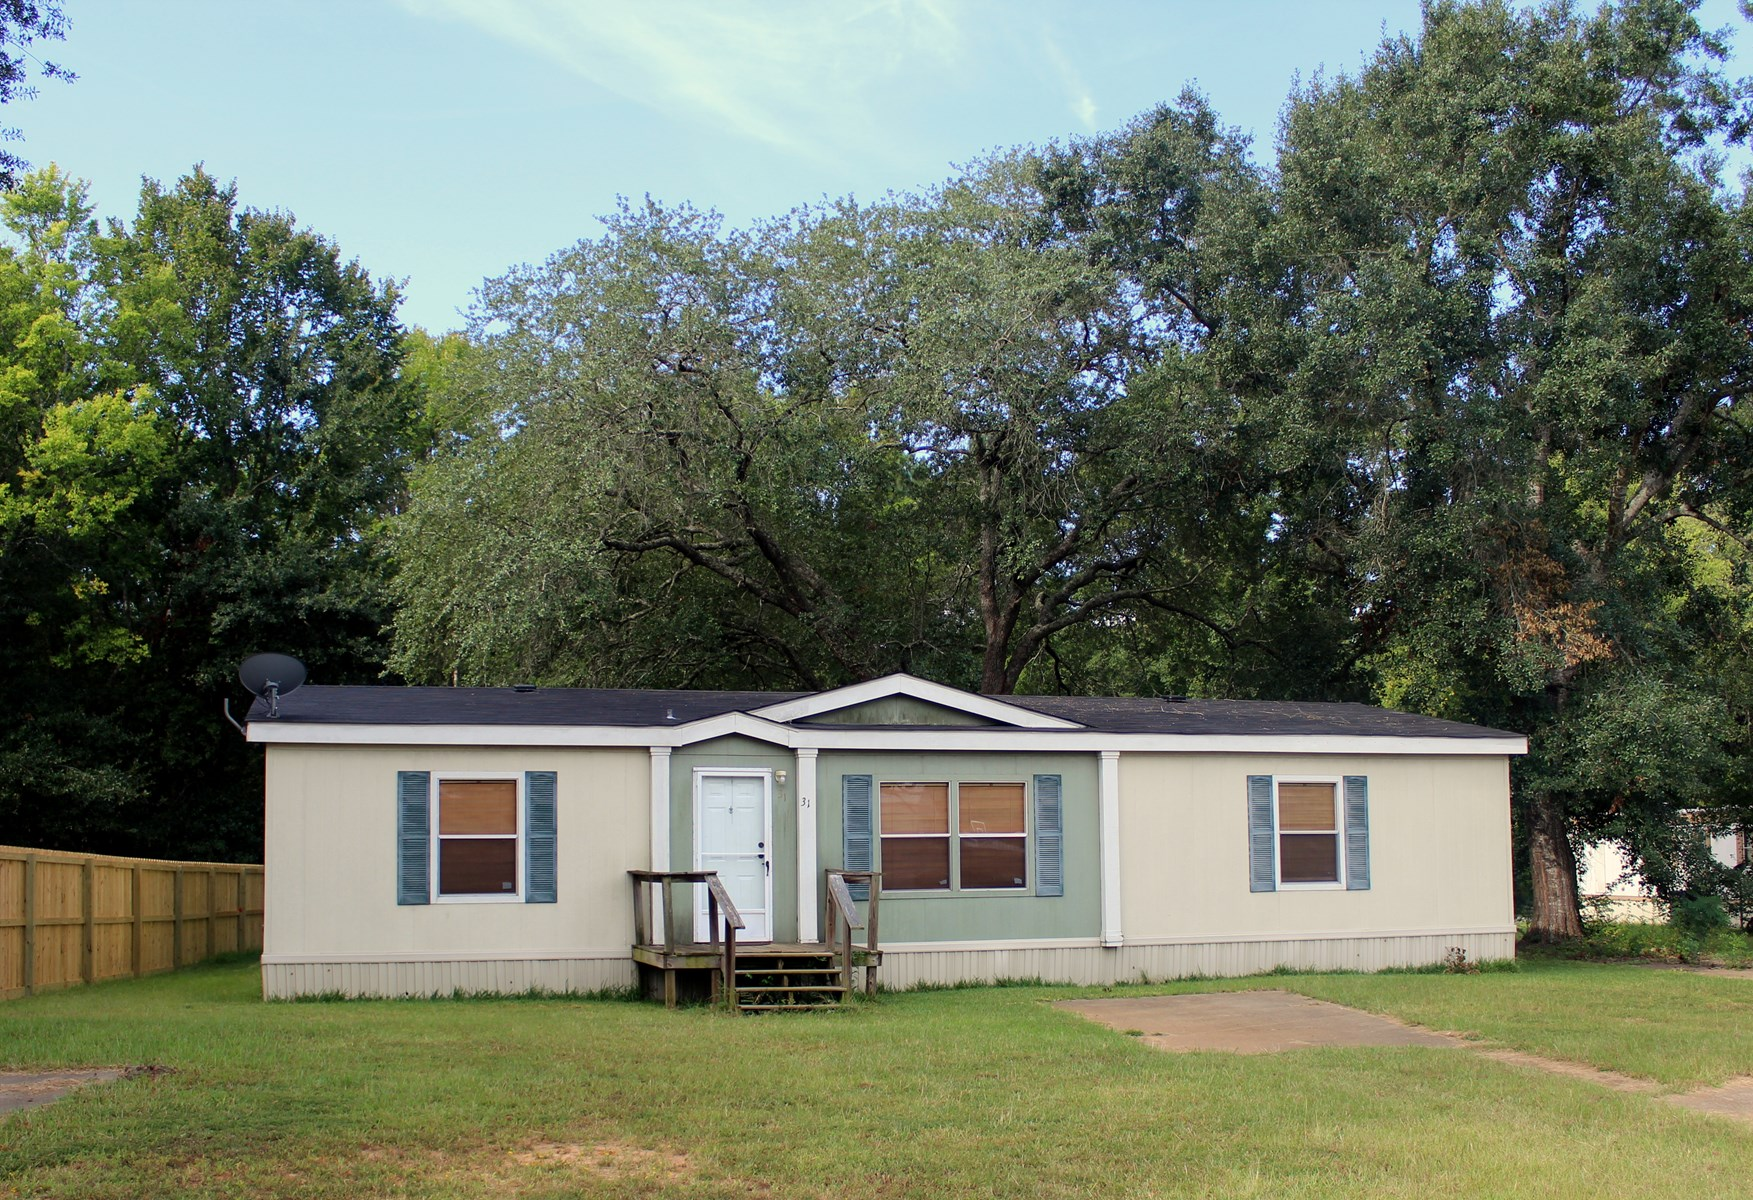 3 bedroom Mobile Home for sale in East Tx Lakeport area